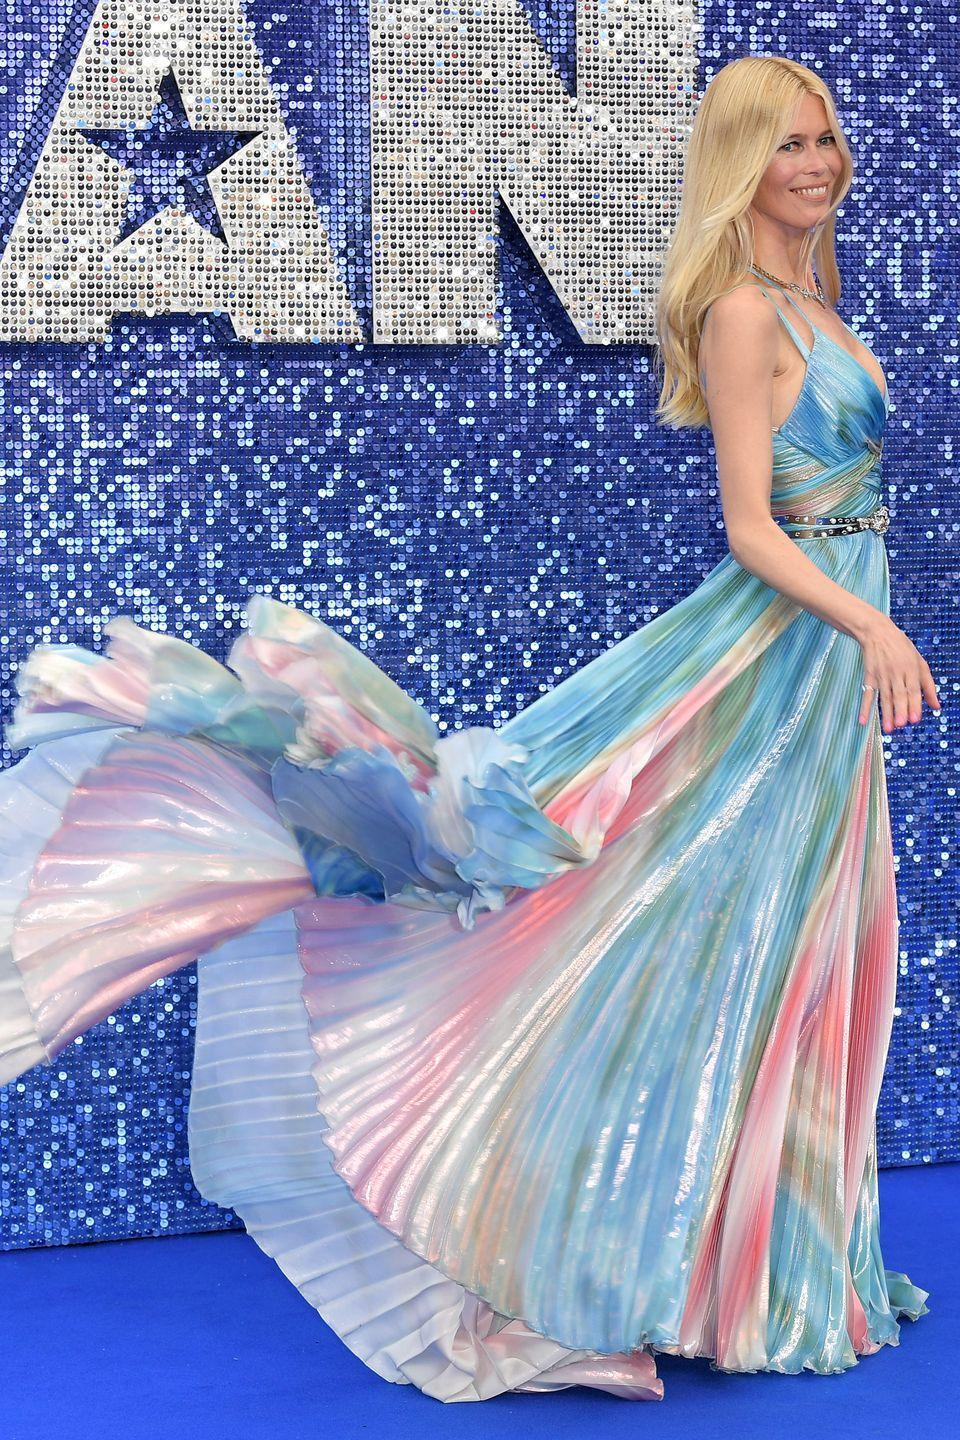 <p>At the London premiere of Rocketman wearing an iridescent, pleated floor-length gown by couture designer Zuhair Murad. I paired it with a stunning, Jimmy Choo gold clutch encrusted with pave diamond stars, gold chevron sandals by Nicholas Kirkwood and a triangle diamond necklace and enamel ring by fine jewellery designer Solange Azagury-Partridge .</p>